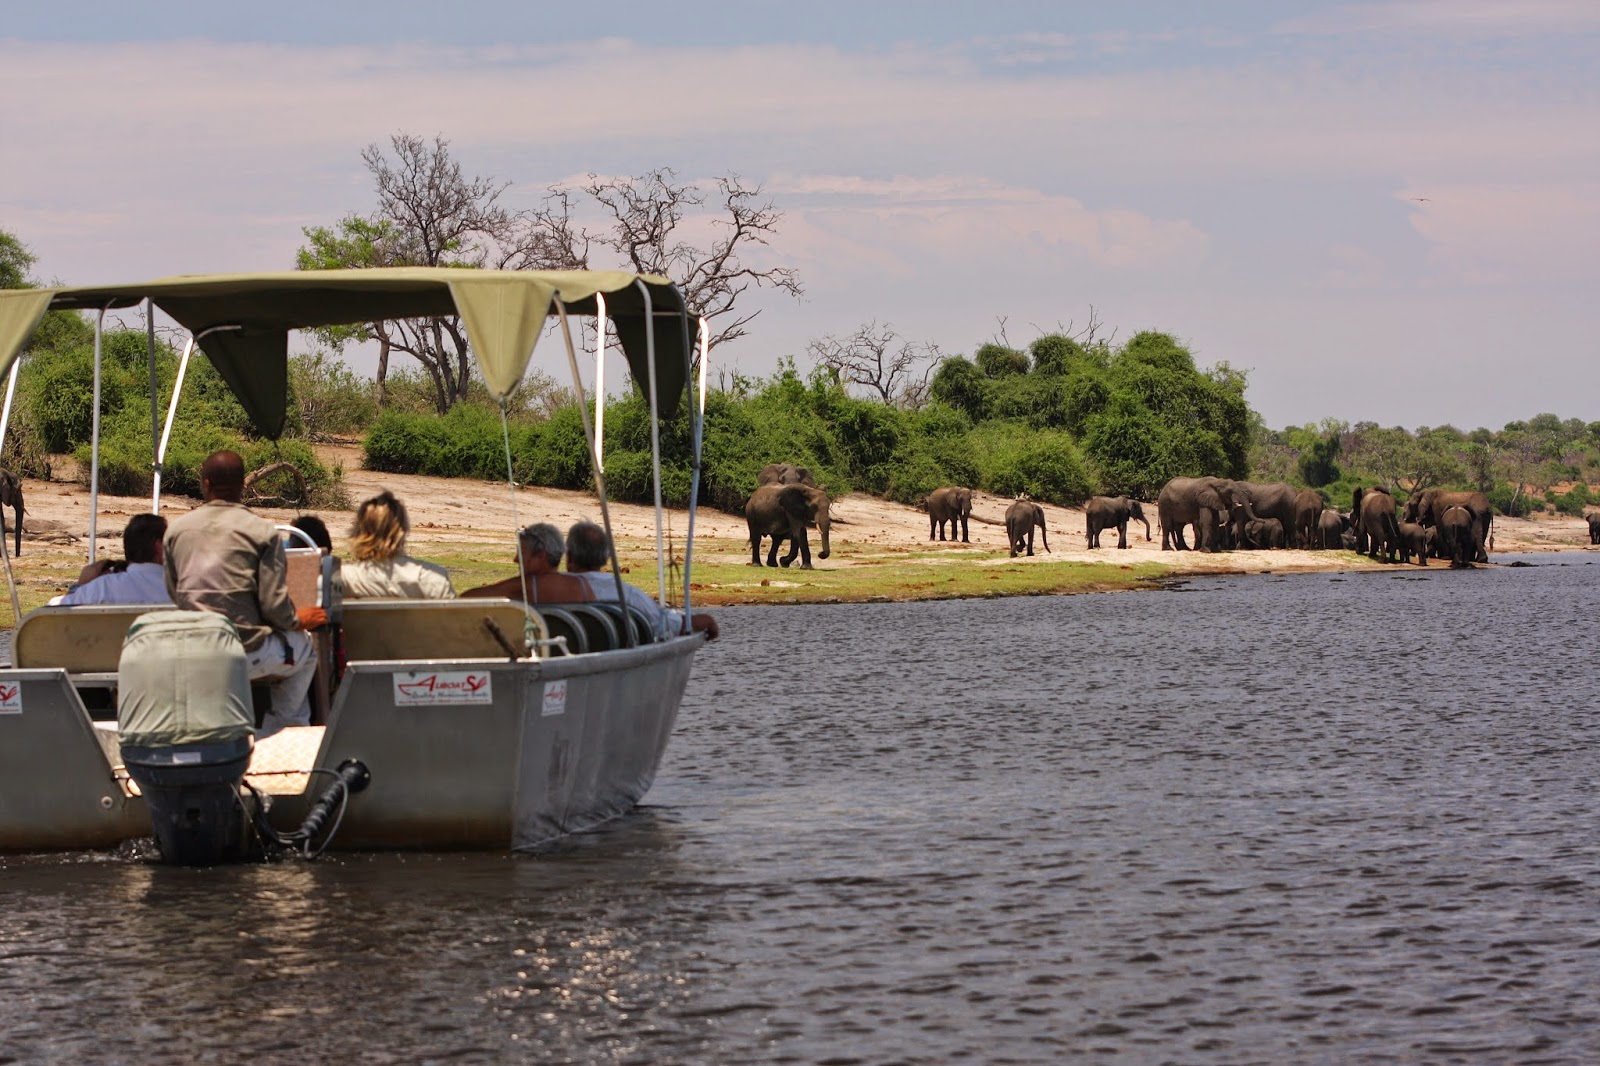 Elephant Valley Lodge Chobe, Botswana